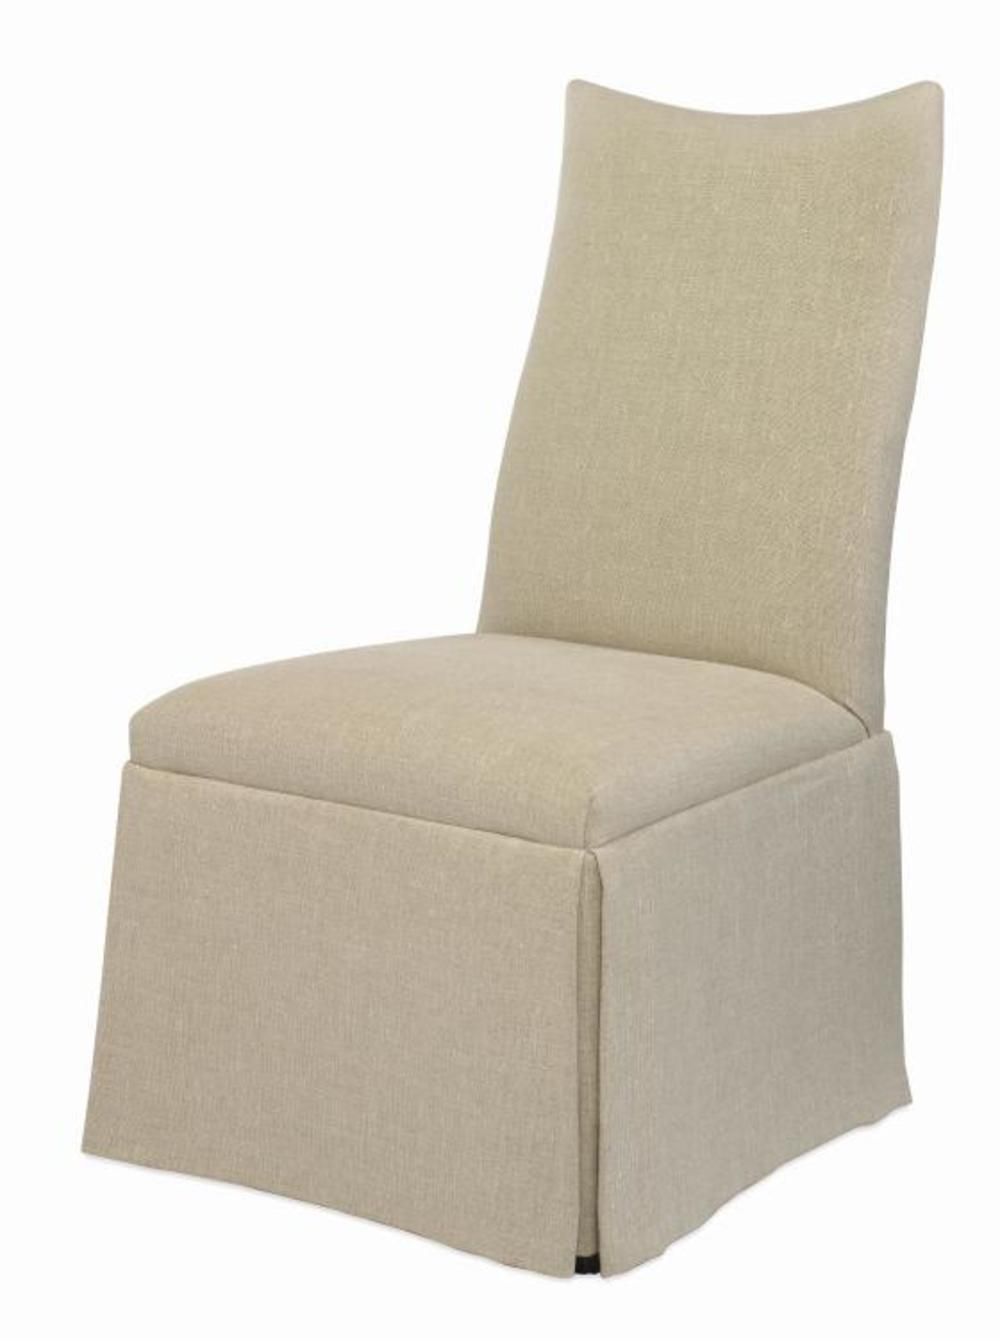 CENTURY FURNITURE - Chandler Curved Back with Scoop Top Chair